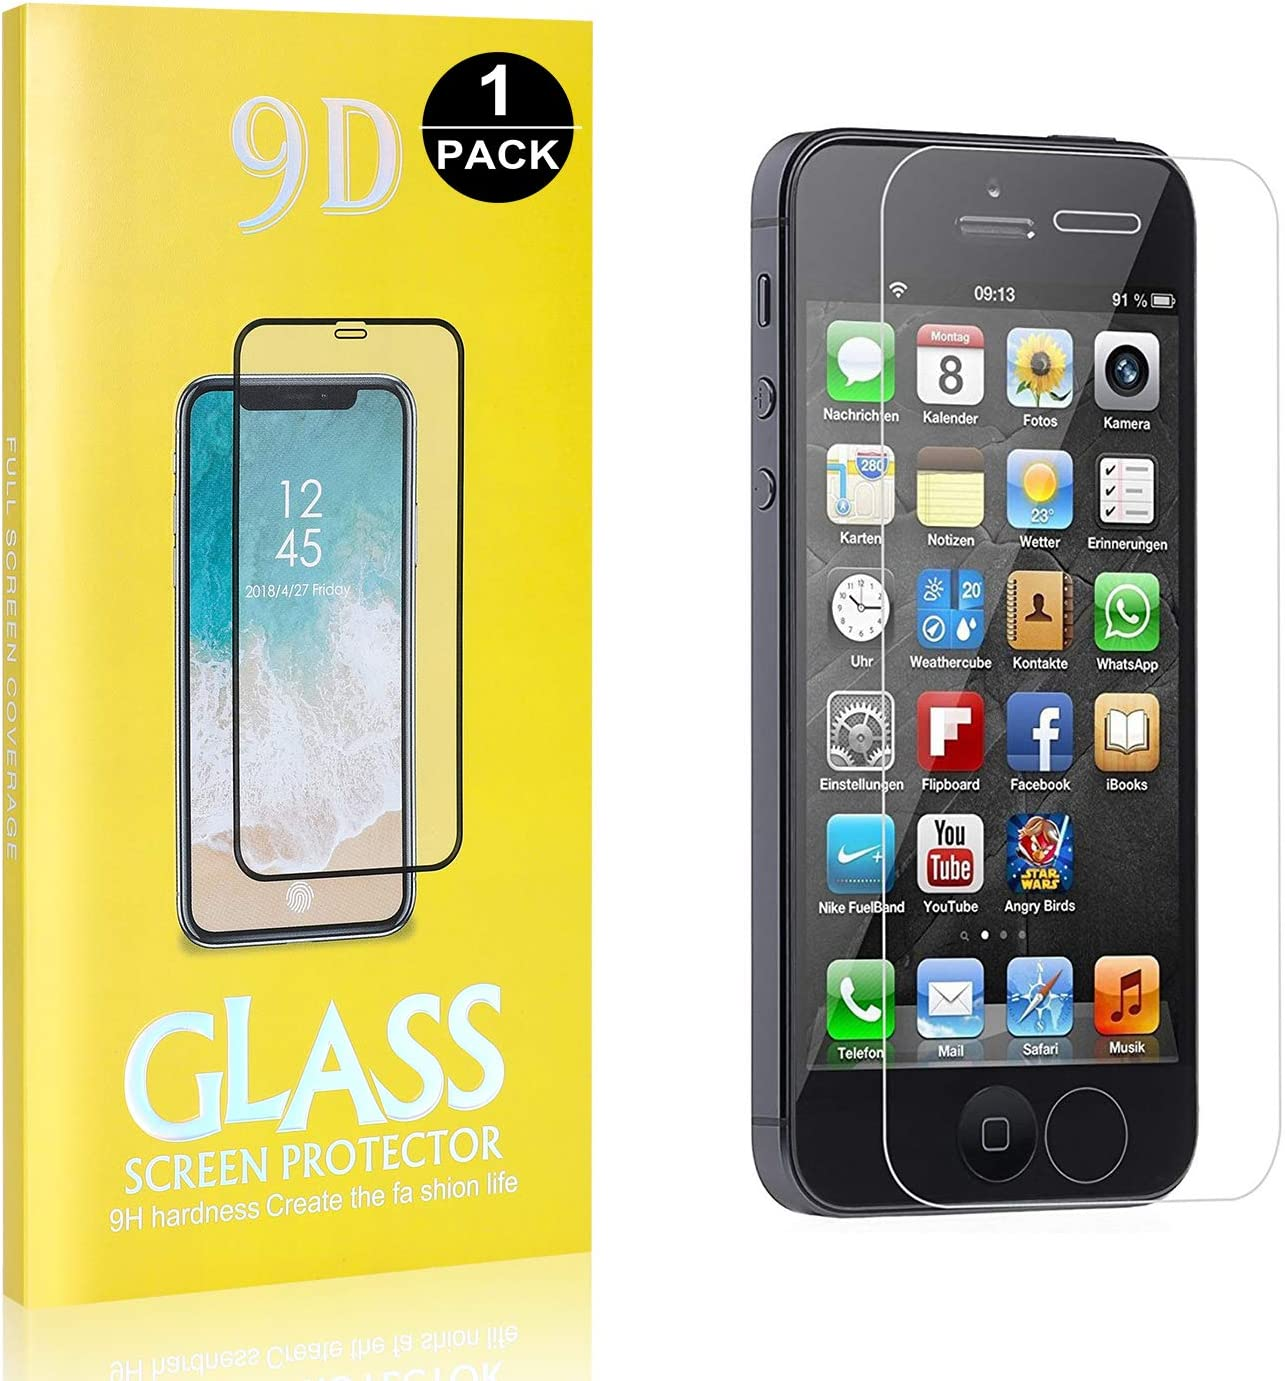 3D Touch Support Tempered Glass Screen Protector for Apple iPhone SE//iPhone 5 // iPhone 5s SONWO iPhone SE//iPhone 5 // iPhone 5s Glass Screen Protector 9H Hardness 1-Pack